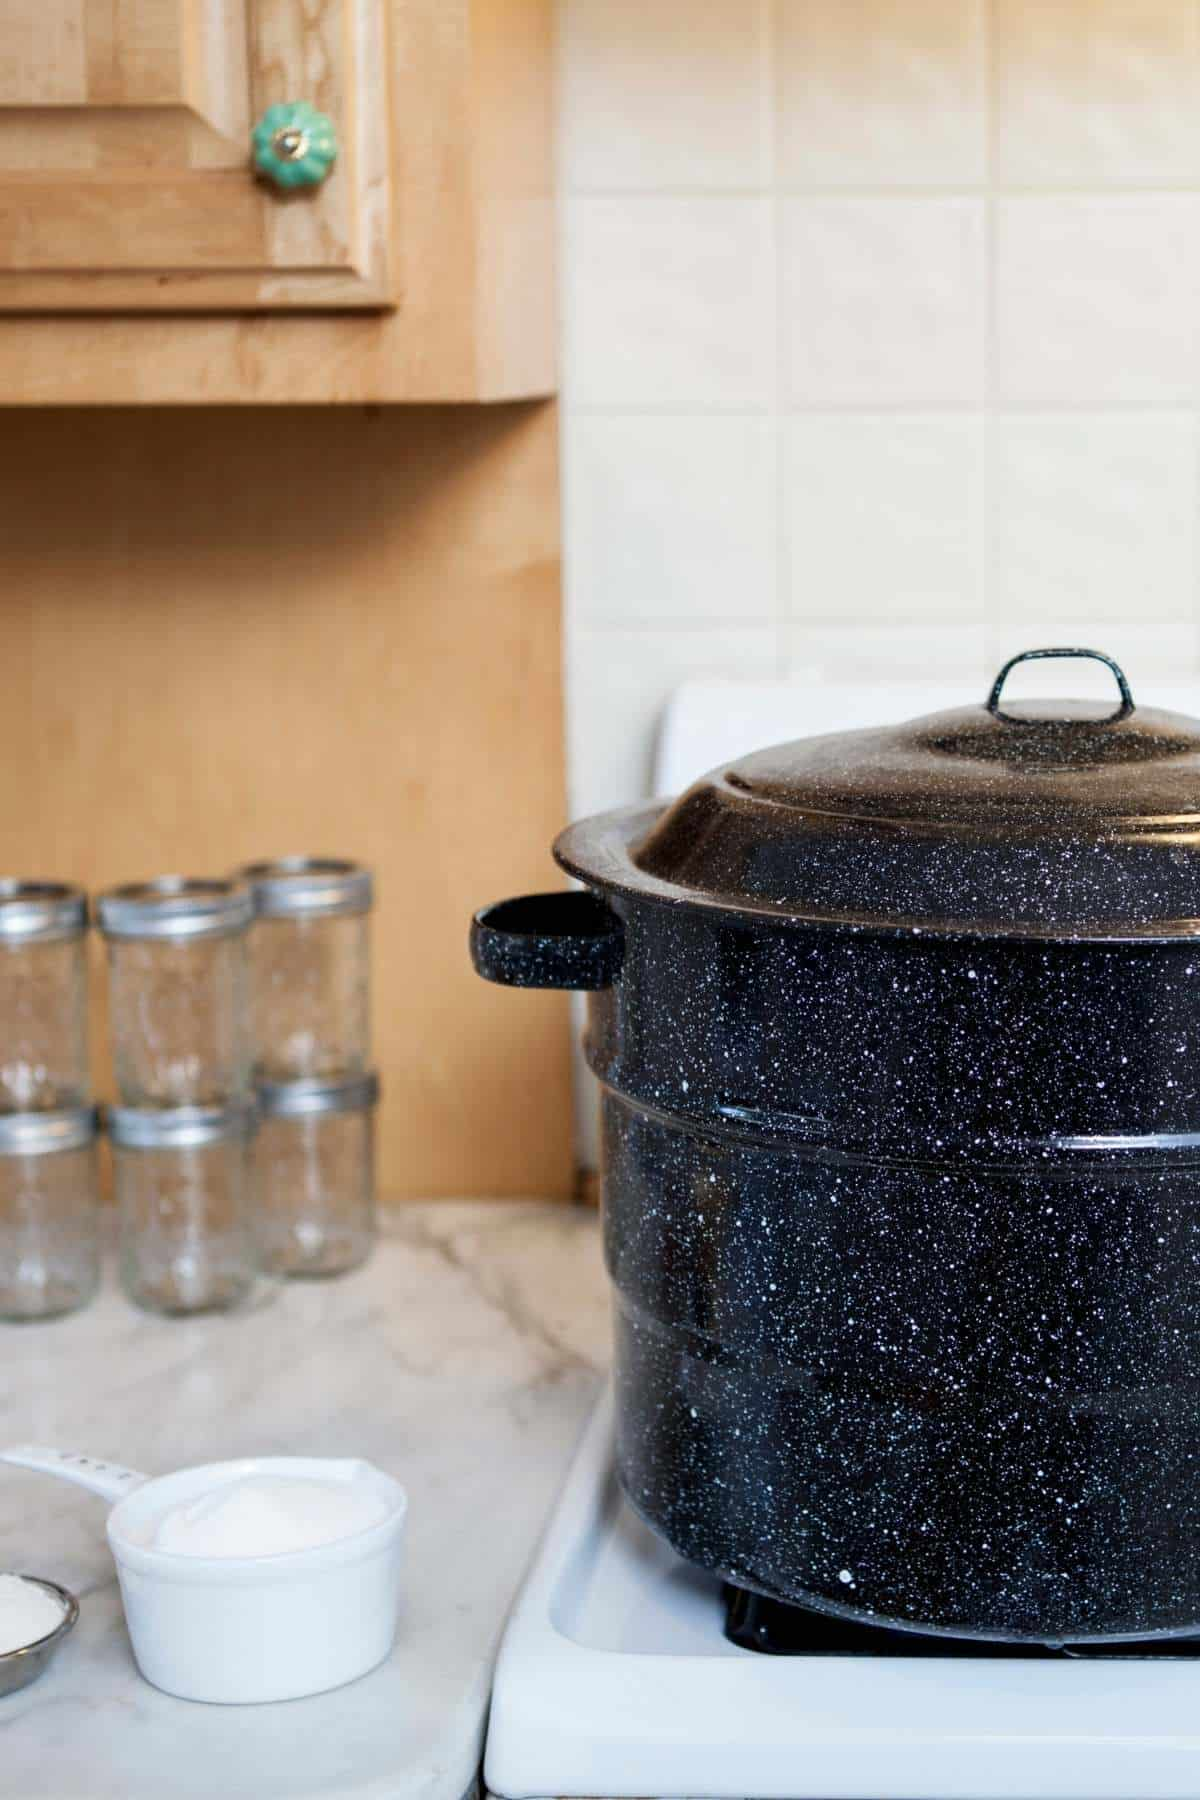 canning pot, jars, and other supplies in kitchen